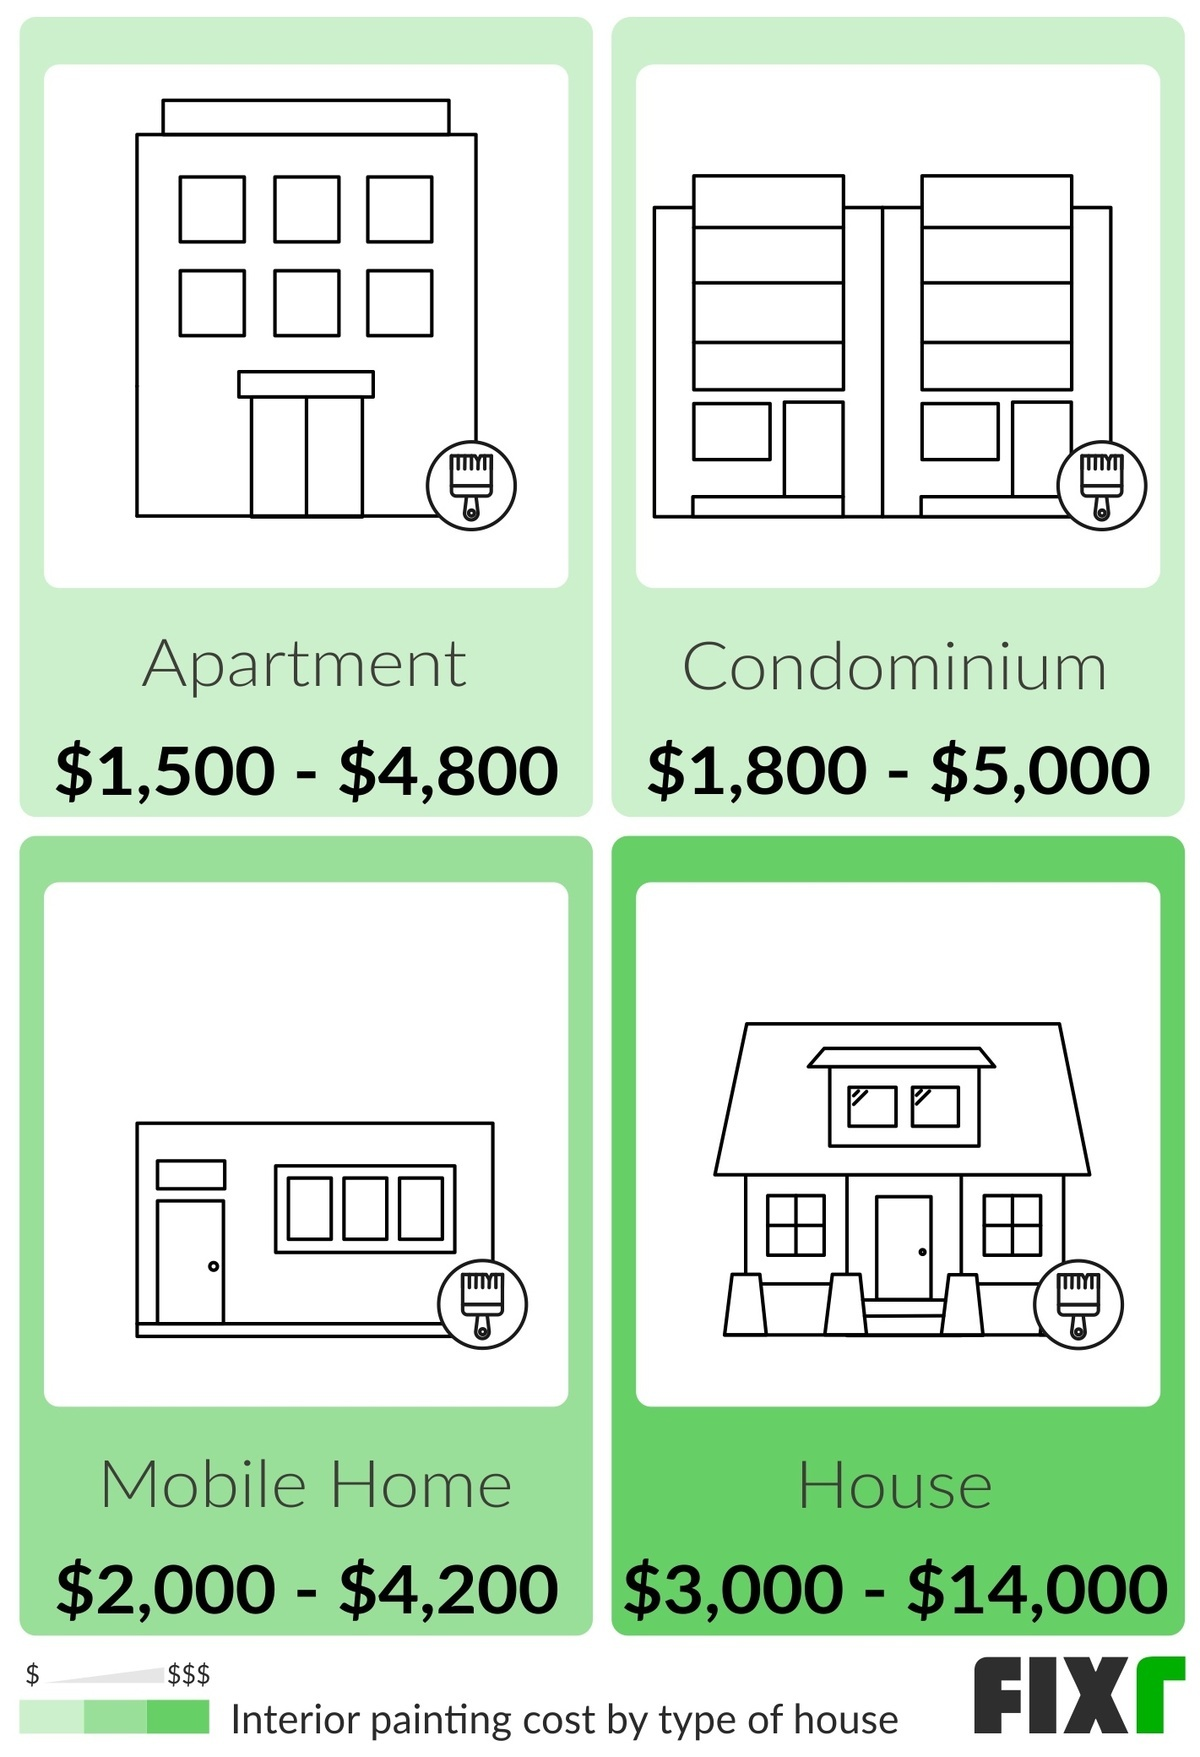 Cost to Paint an Aparment, a Condominium, a Mobile Home, and a House